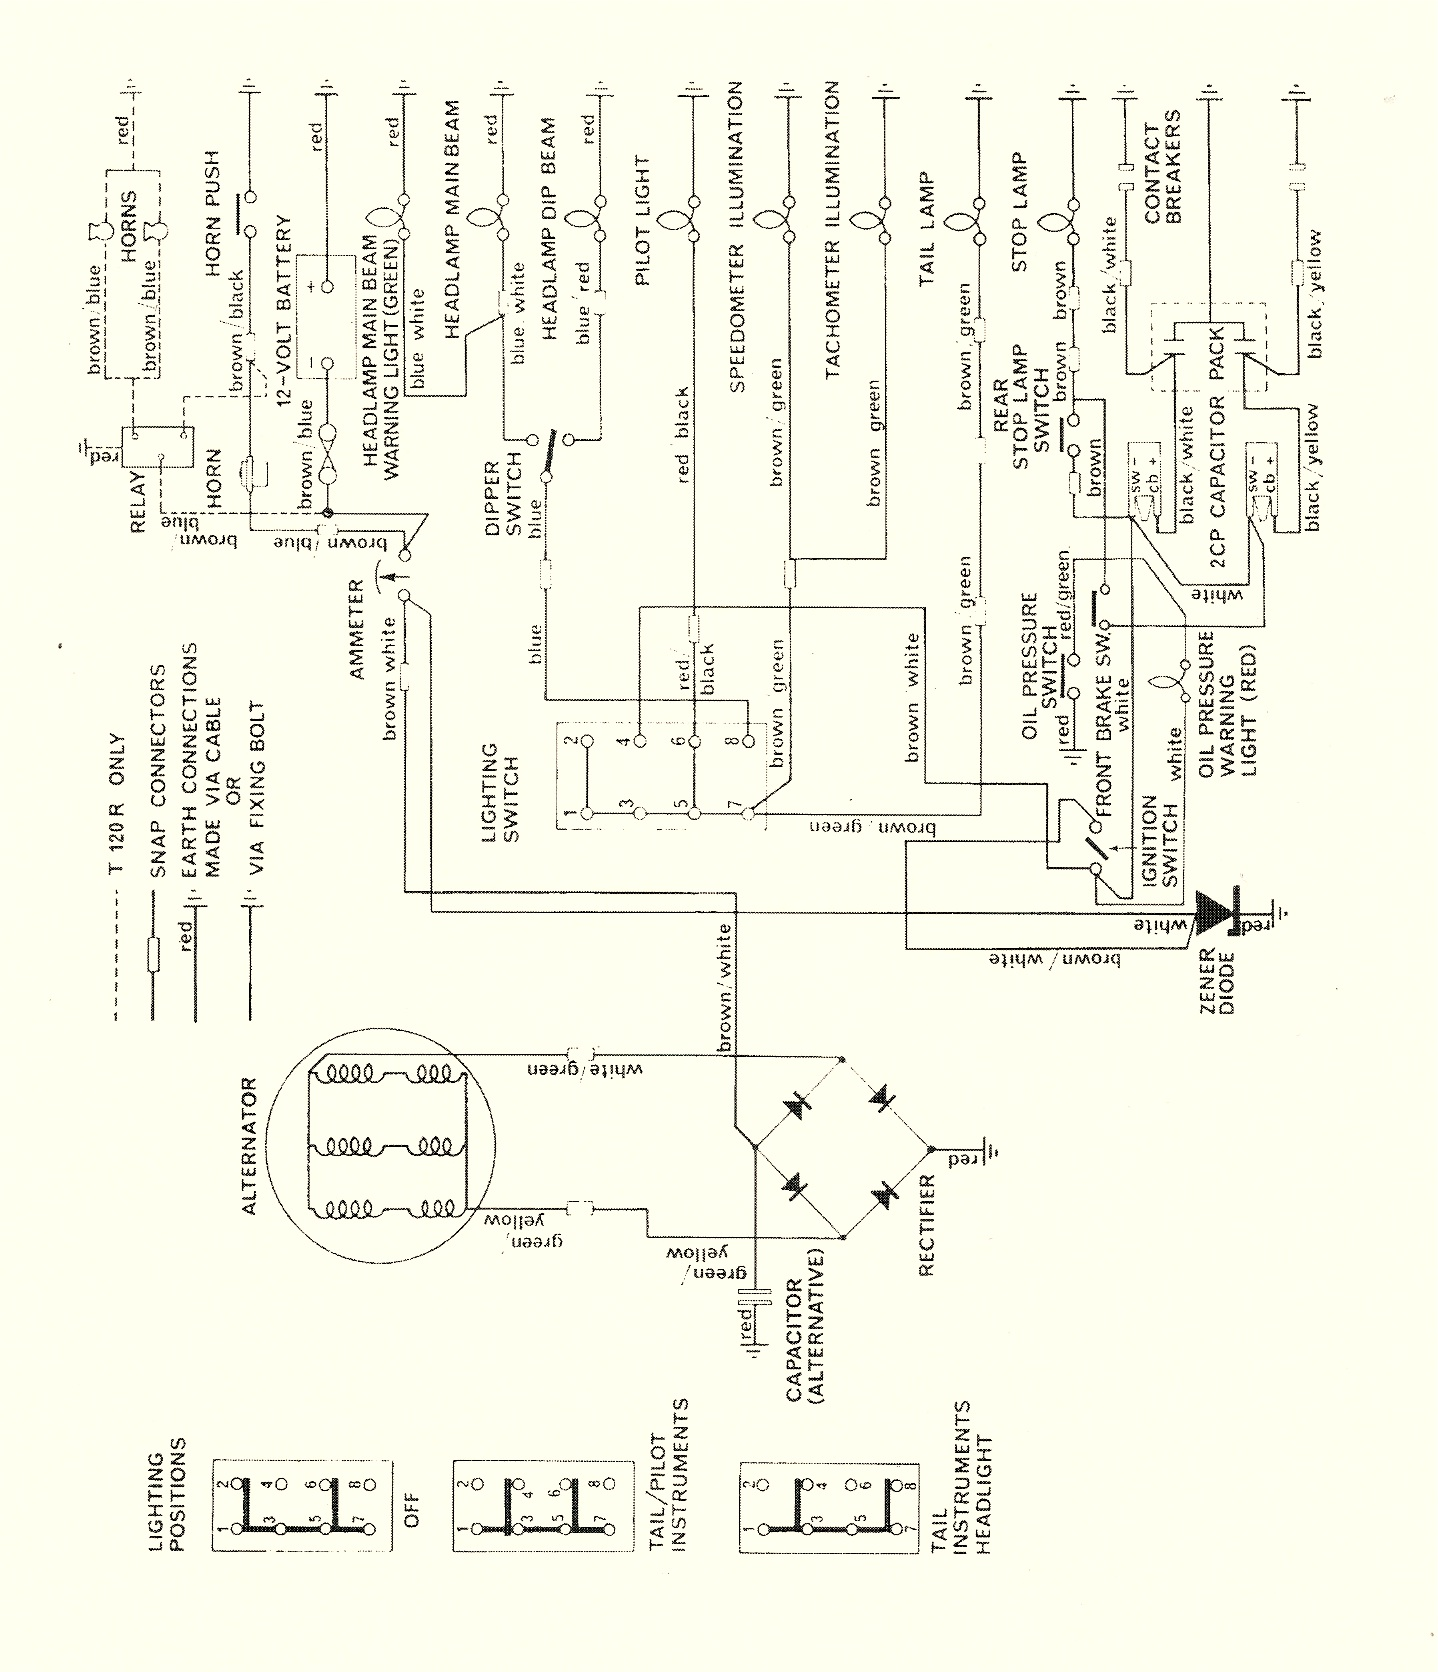 triumph bonneville engine diagram schema wiring diagram 2009 Yamaha R6 Wiring-Diagram 1969 triumph bonneville engine diagram wiring diagram triumph tiger engine diagram 1969 triumph bonneville engine diagram